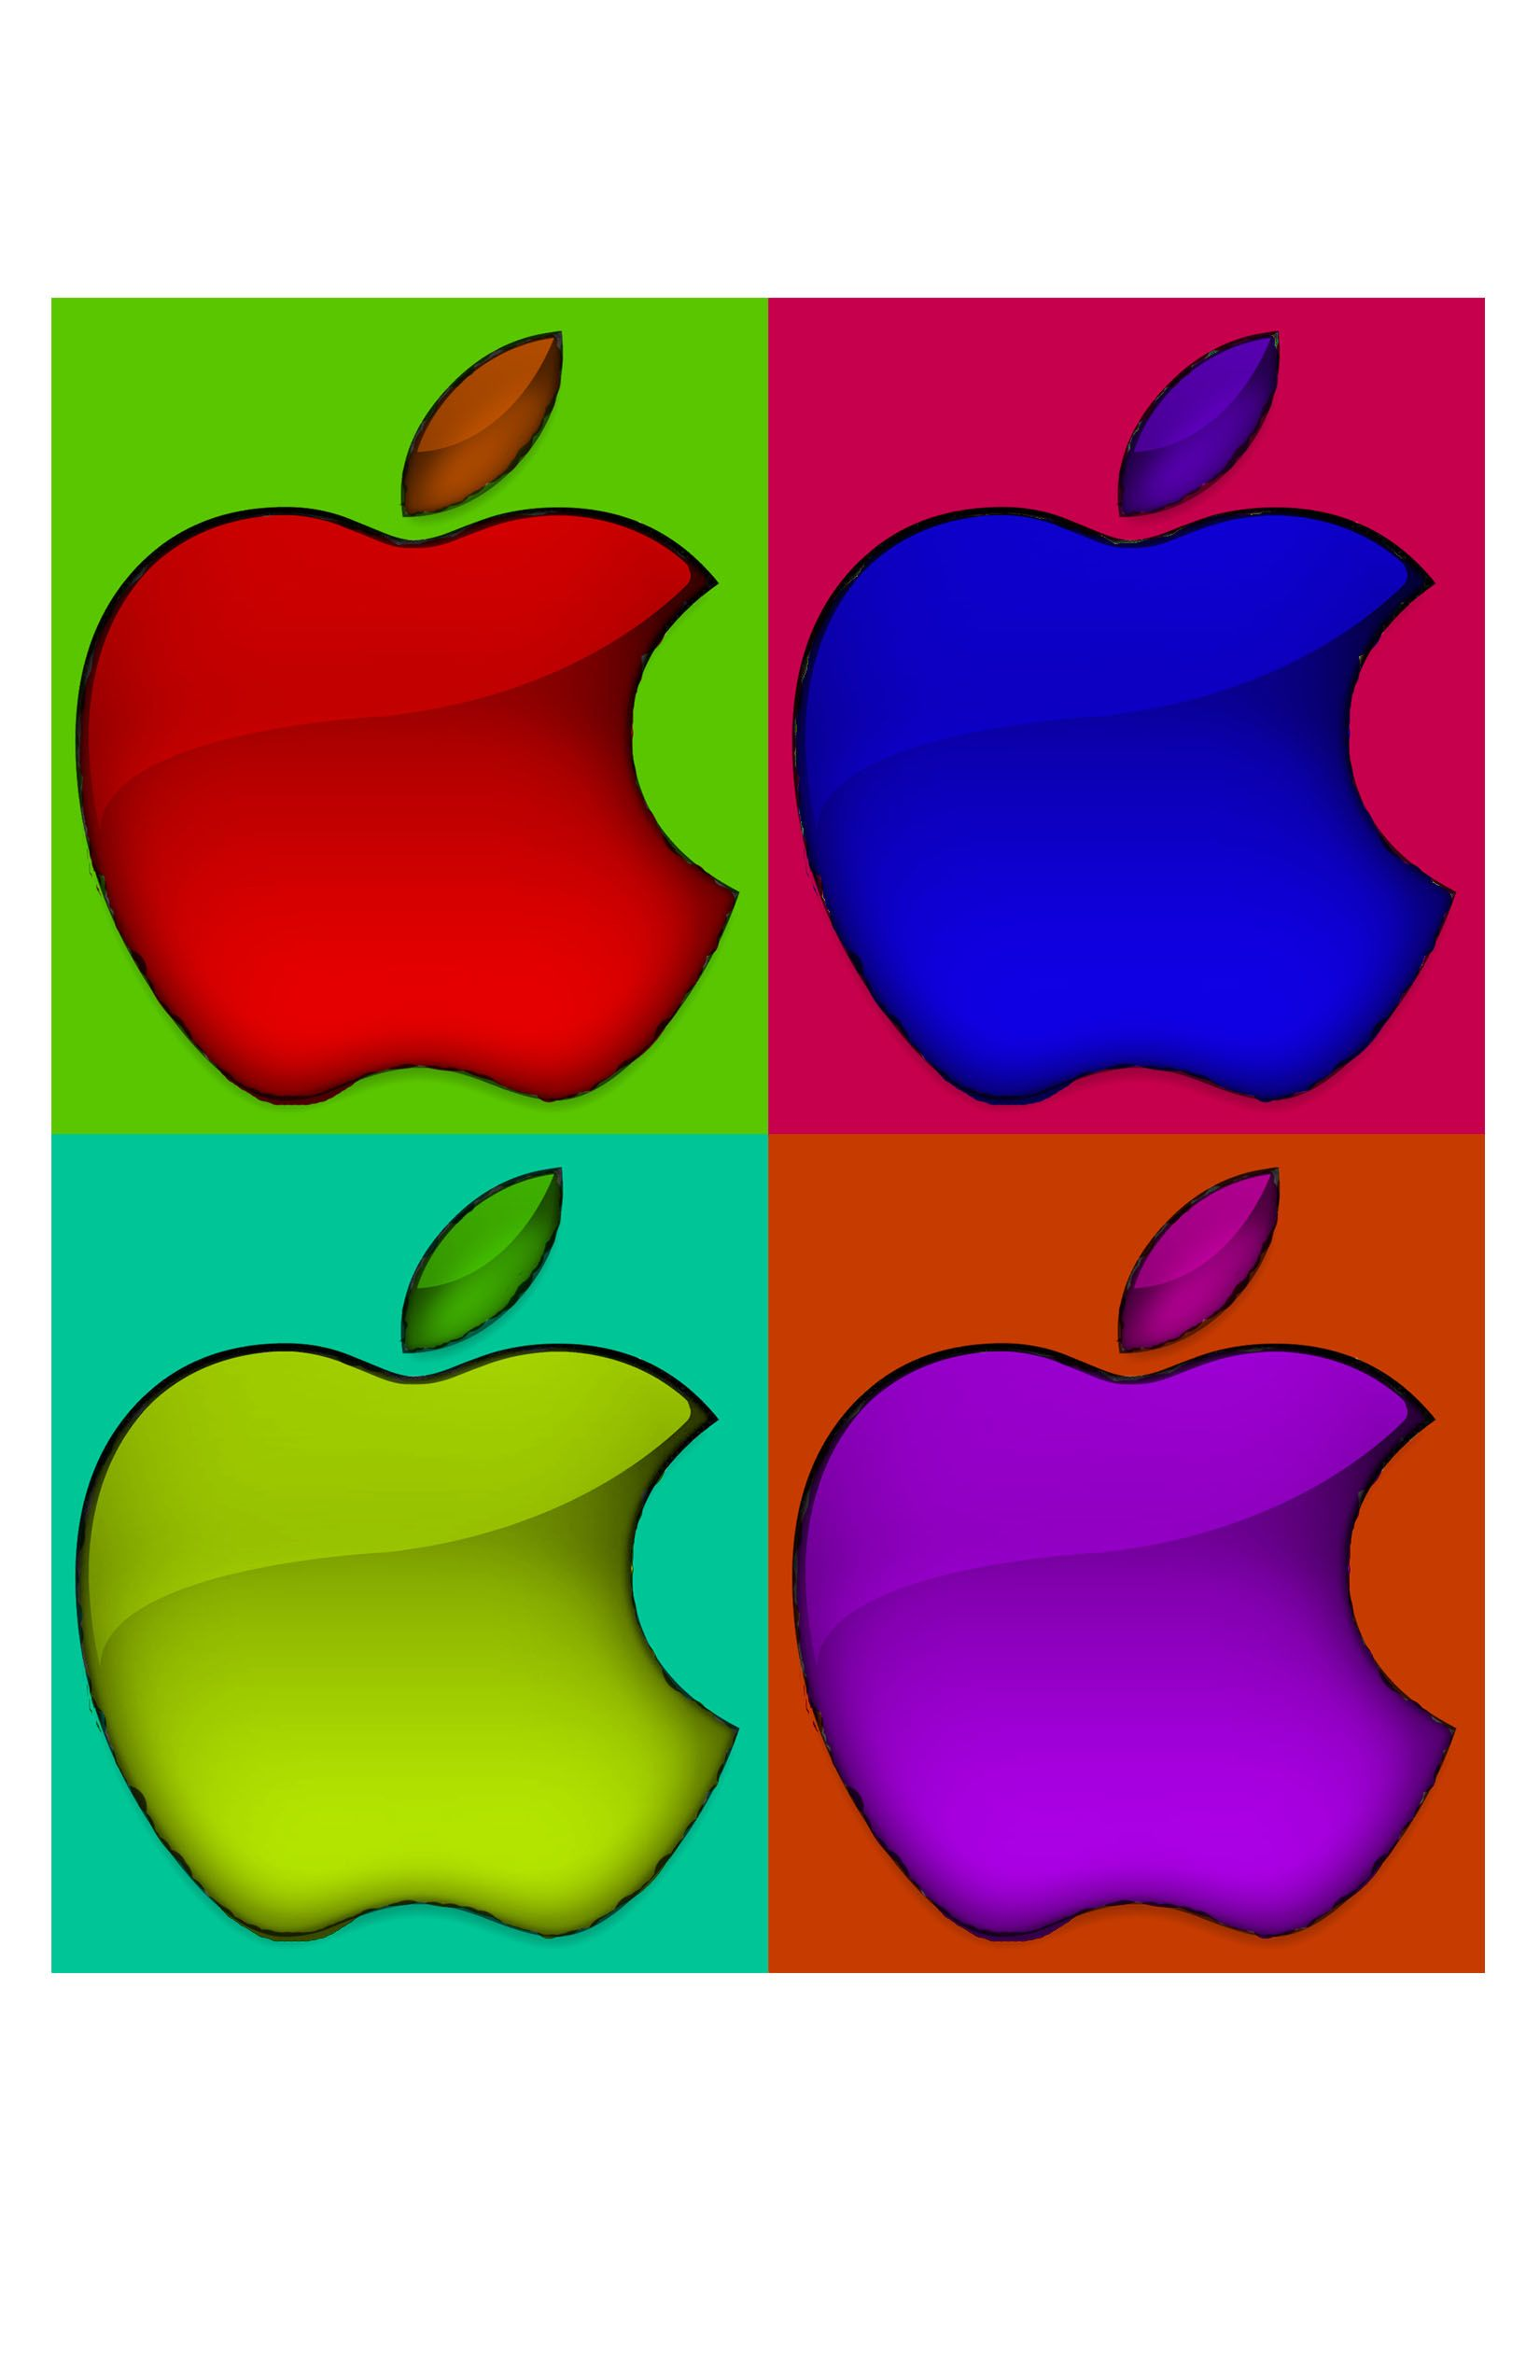 andy warhol, apple logo | possible art nite projects | pinterest